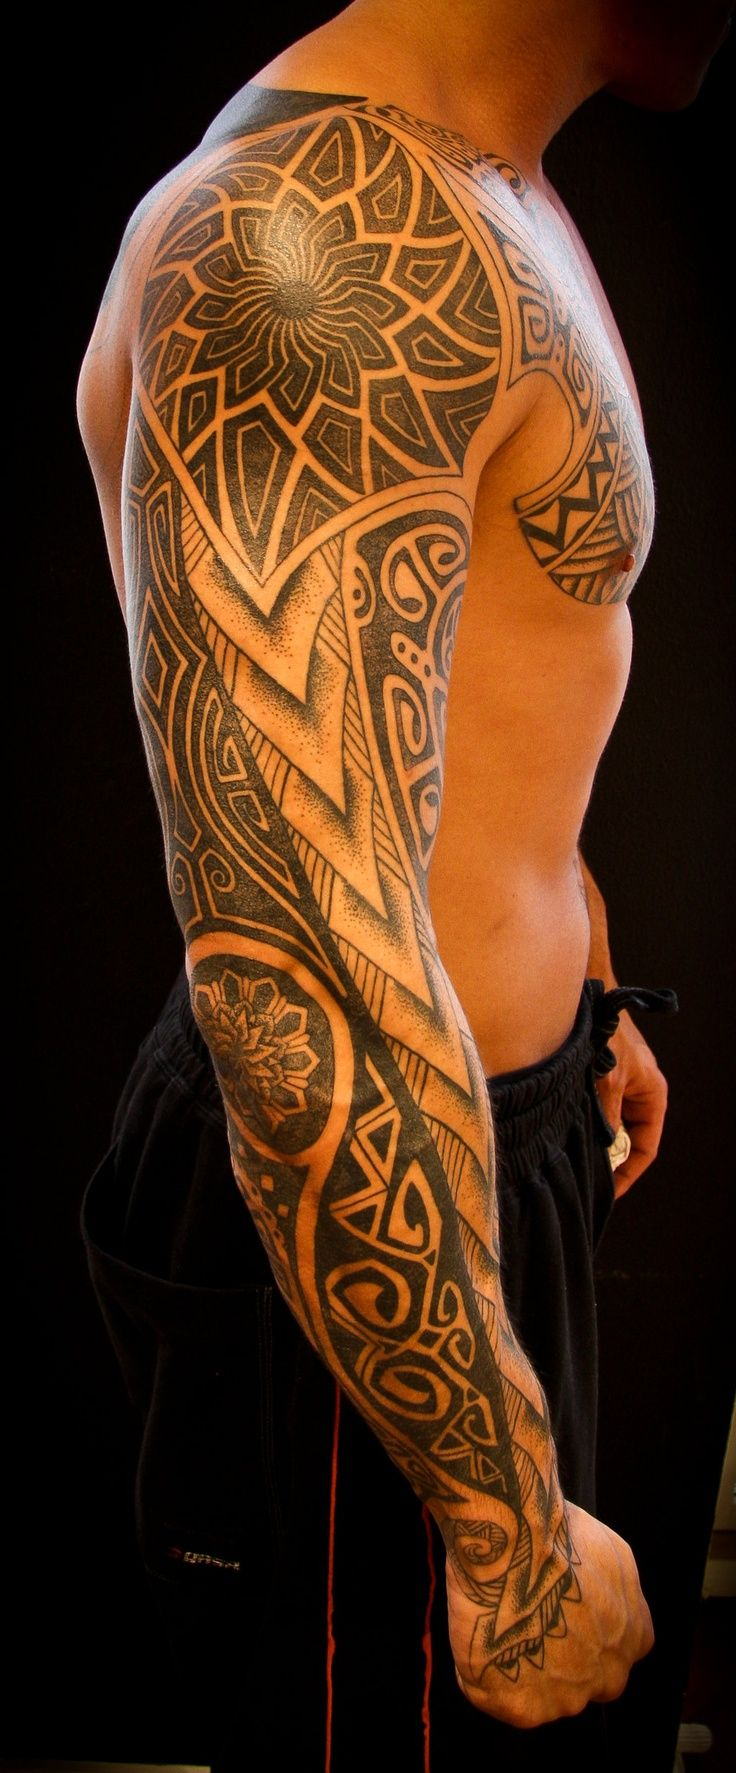 23ecb9190 Male Tattoo Ideas; Barbed Wire, Weapons, Skulls and the Devil | tattoo ideas  | Tribal tattoos, Polynesian tattoo designs, Tribal tattoo designs